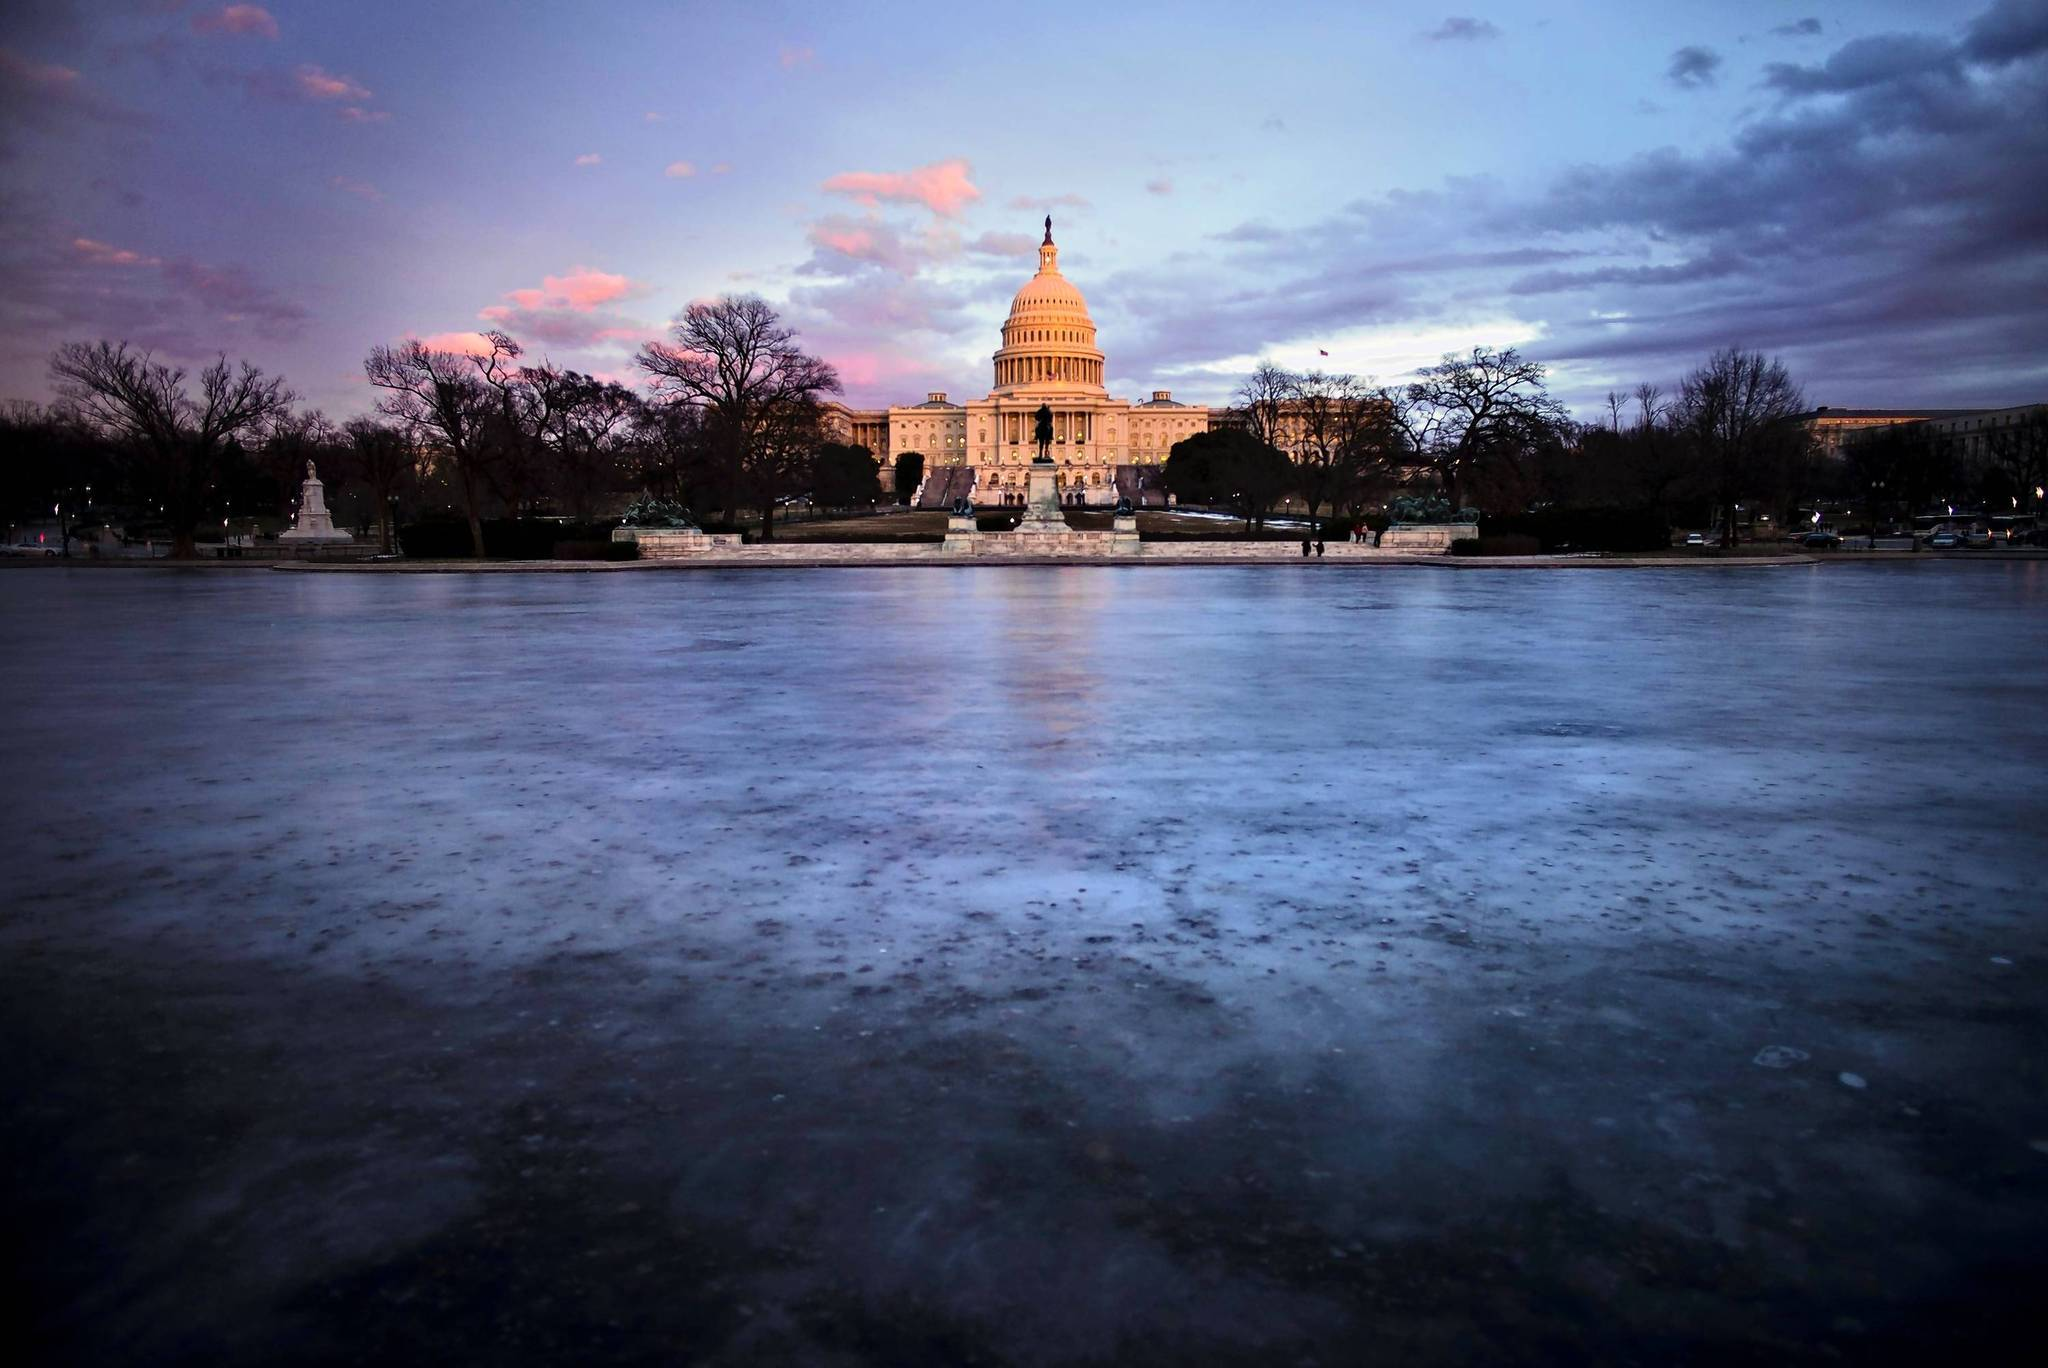 A view of the U.S. Capitol on Jan. 27, 2014, in Washington, D.C.,the evening before President Obama will deliver his State of the Union address to a joint meeting of Congress.